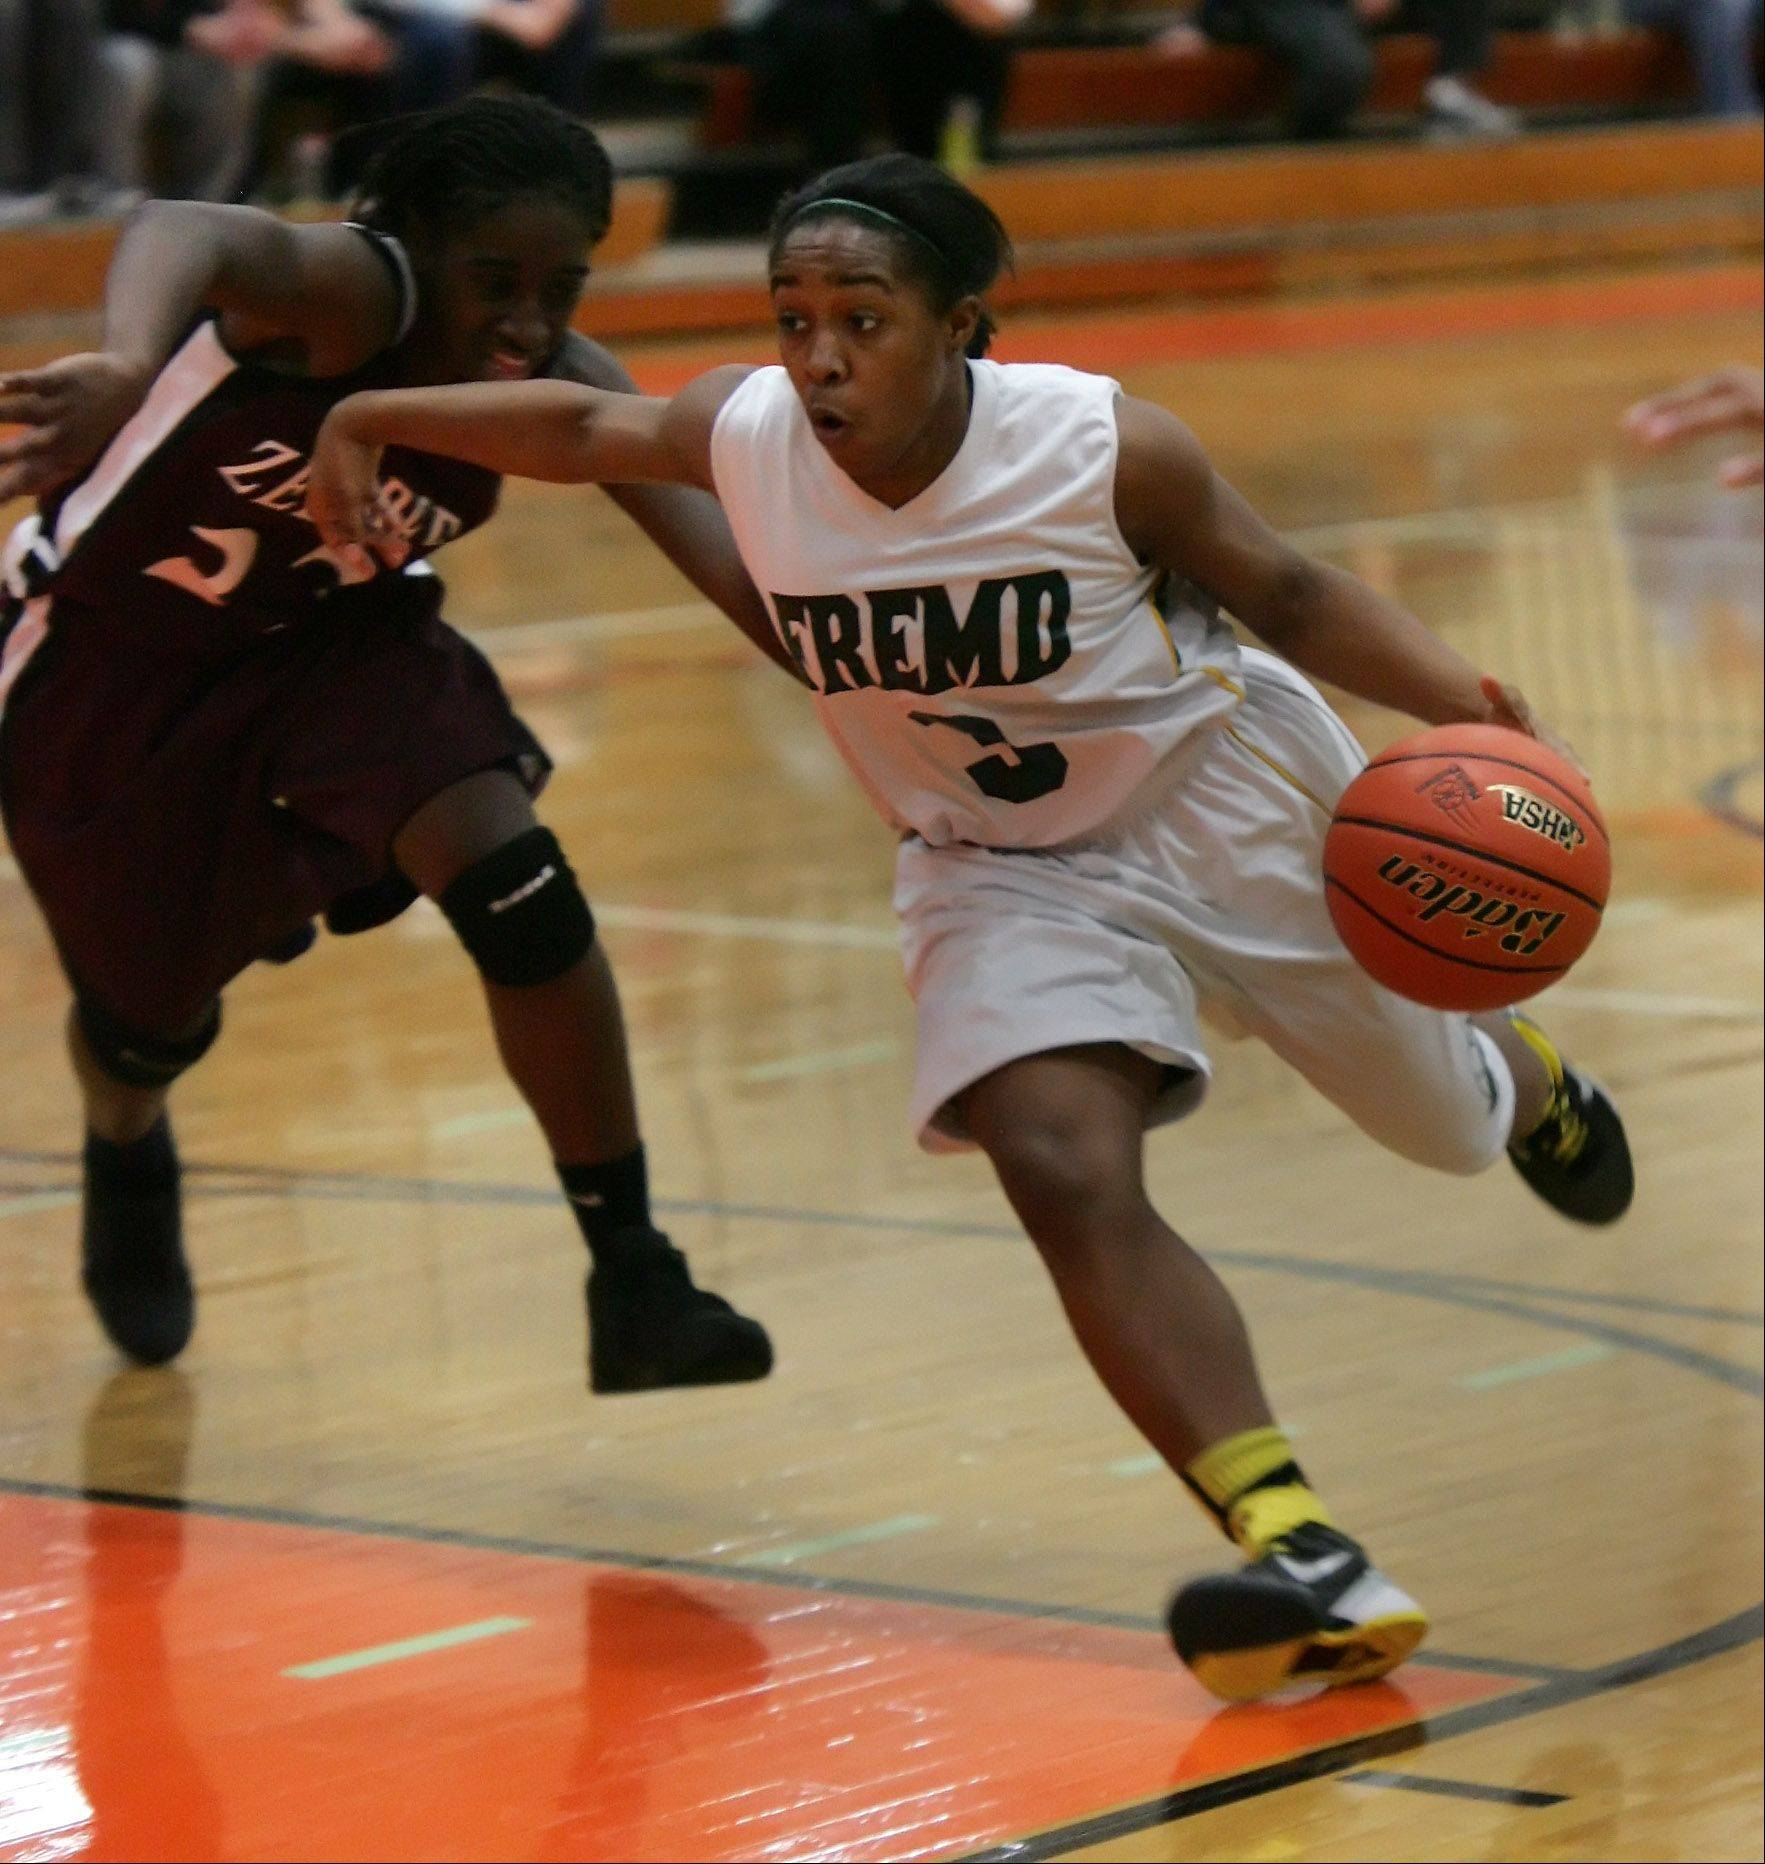 Images: Class 4A girls sectional basketball at Libertyville